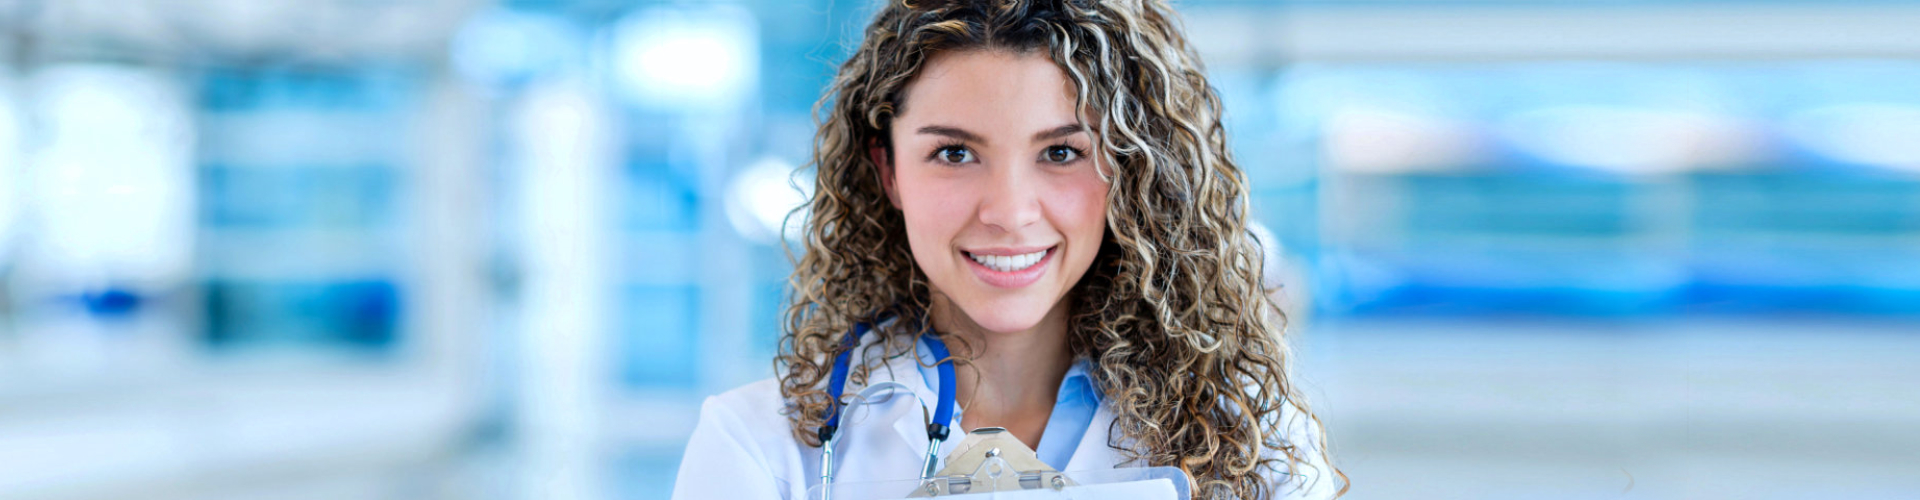 nurse with blonde and curly hair smiling